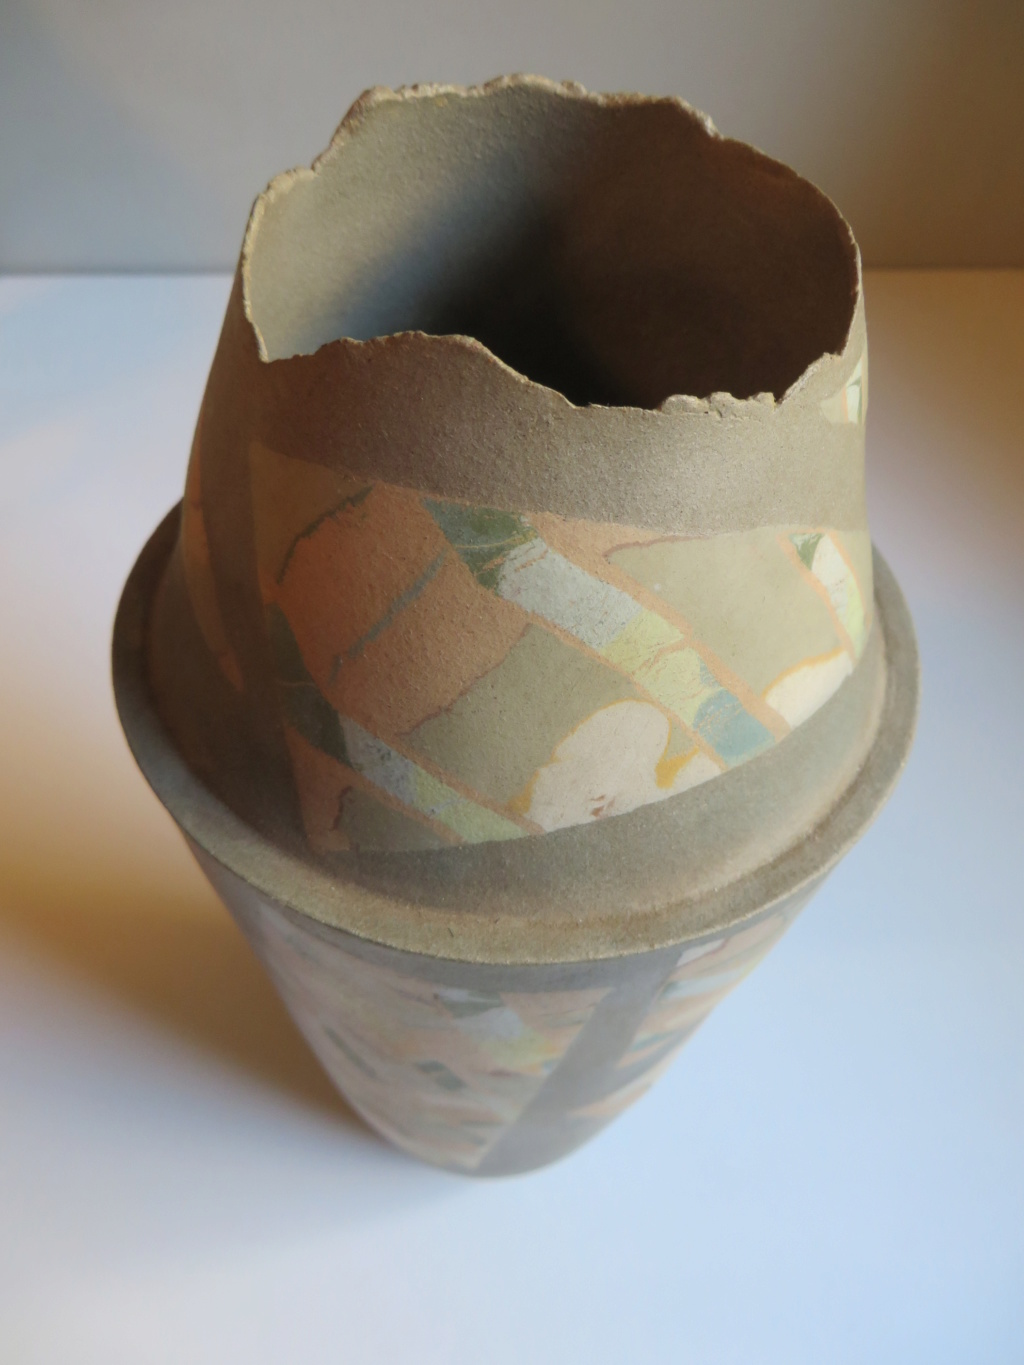 Bullet shaped vase with incised triangle mark - Tina Vlassopulos Img_9713